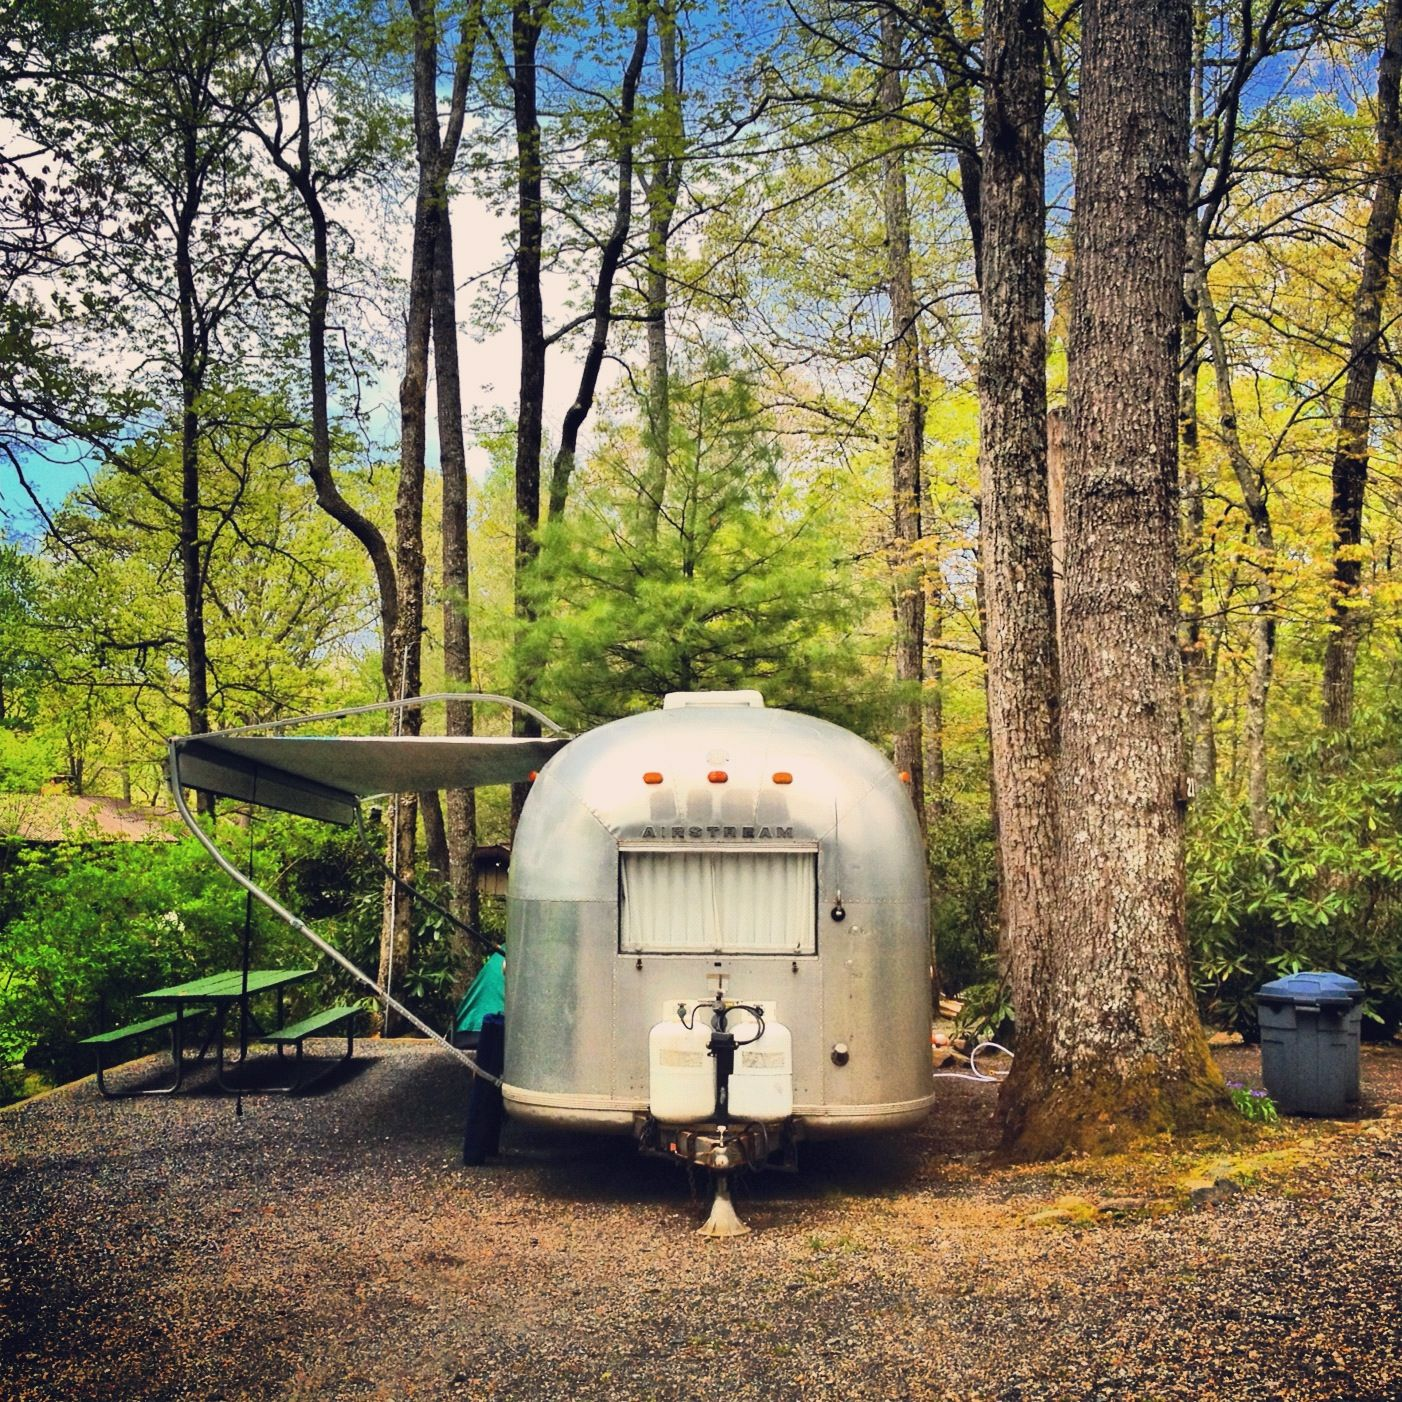 Airstream Caravan Vintage vintage airstream. i want to be there right now. | vintage